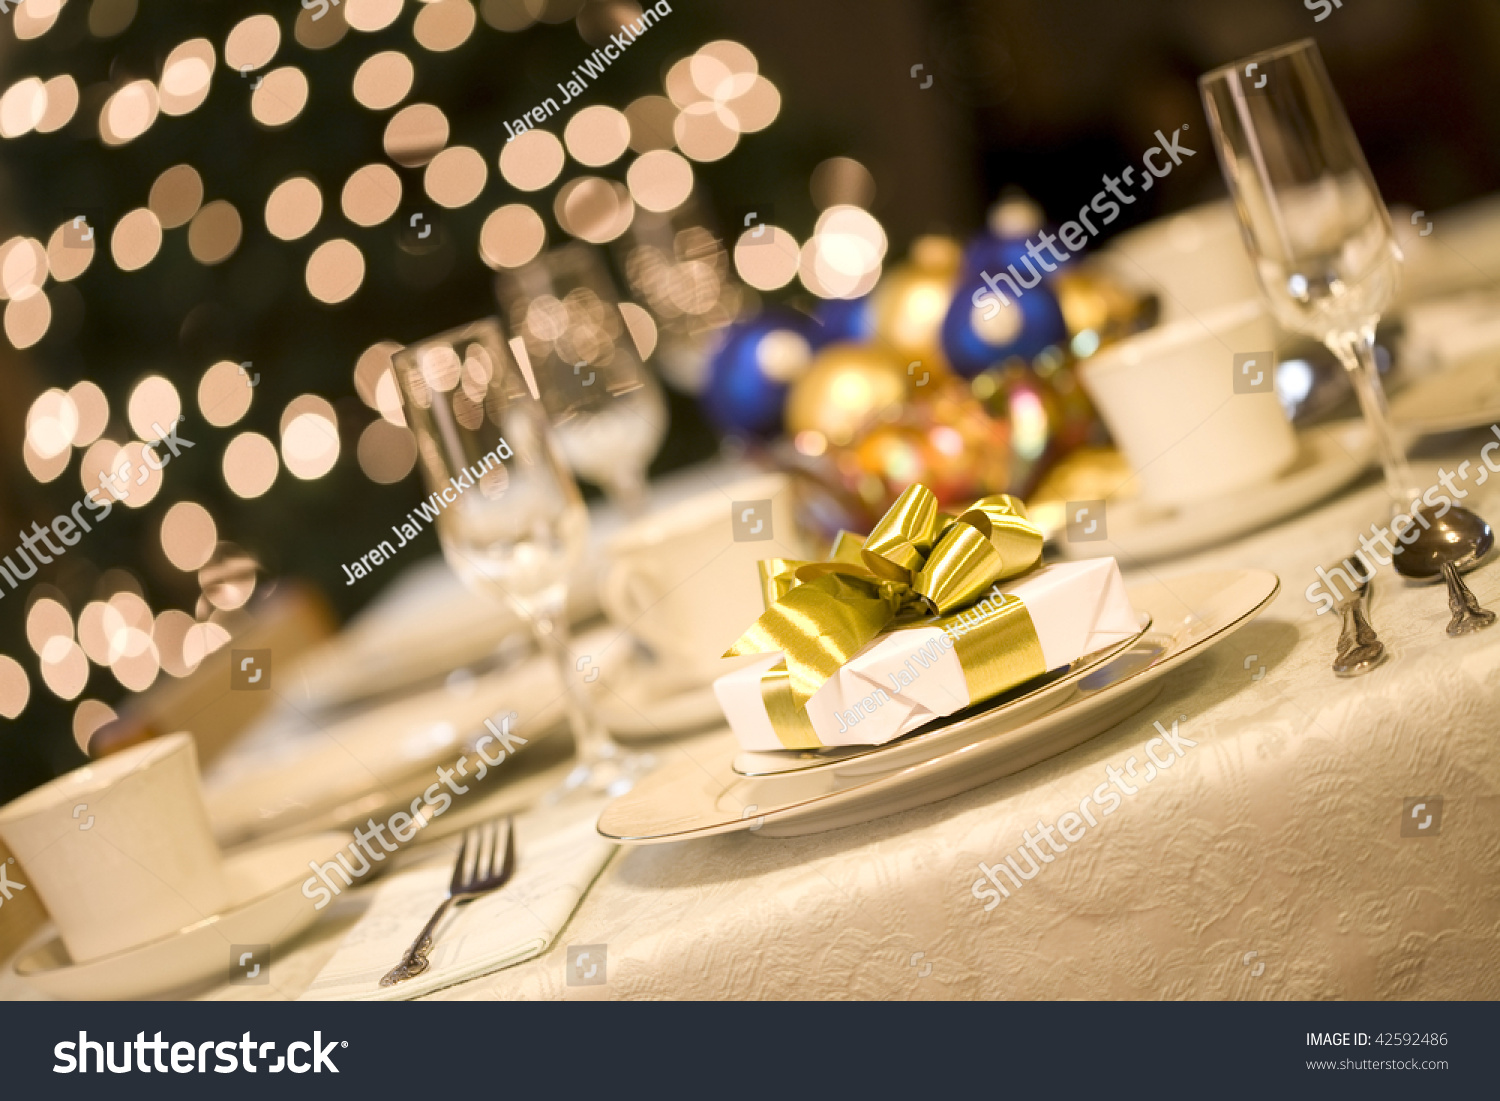 Dinner table background - Gold Present On Dining Table With Christmas Tree Lights In Background